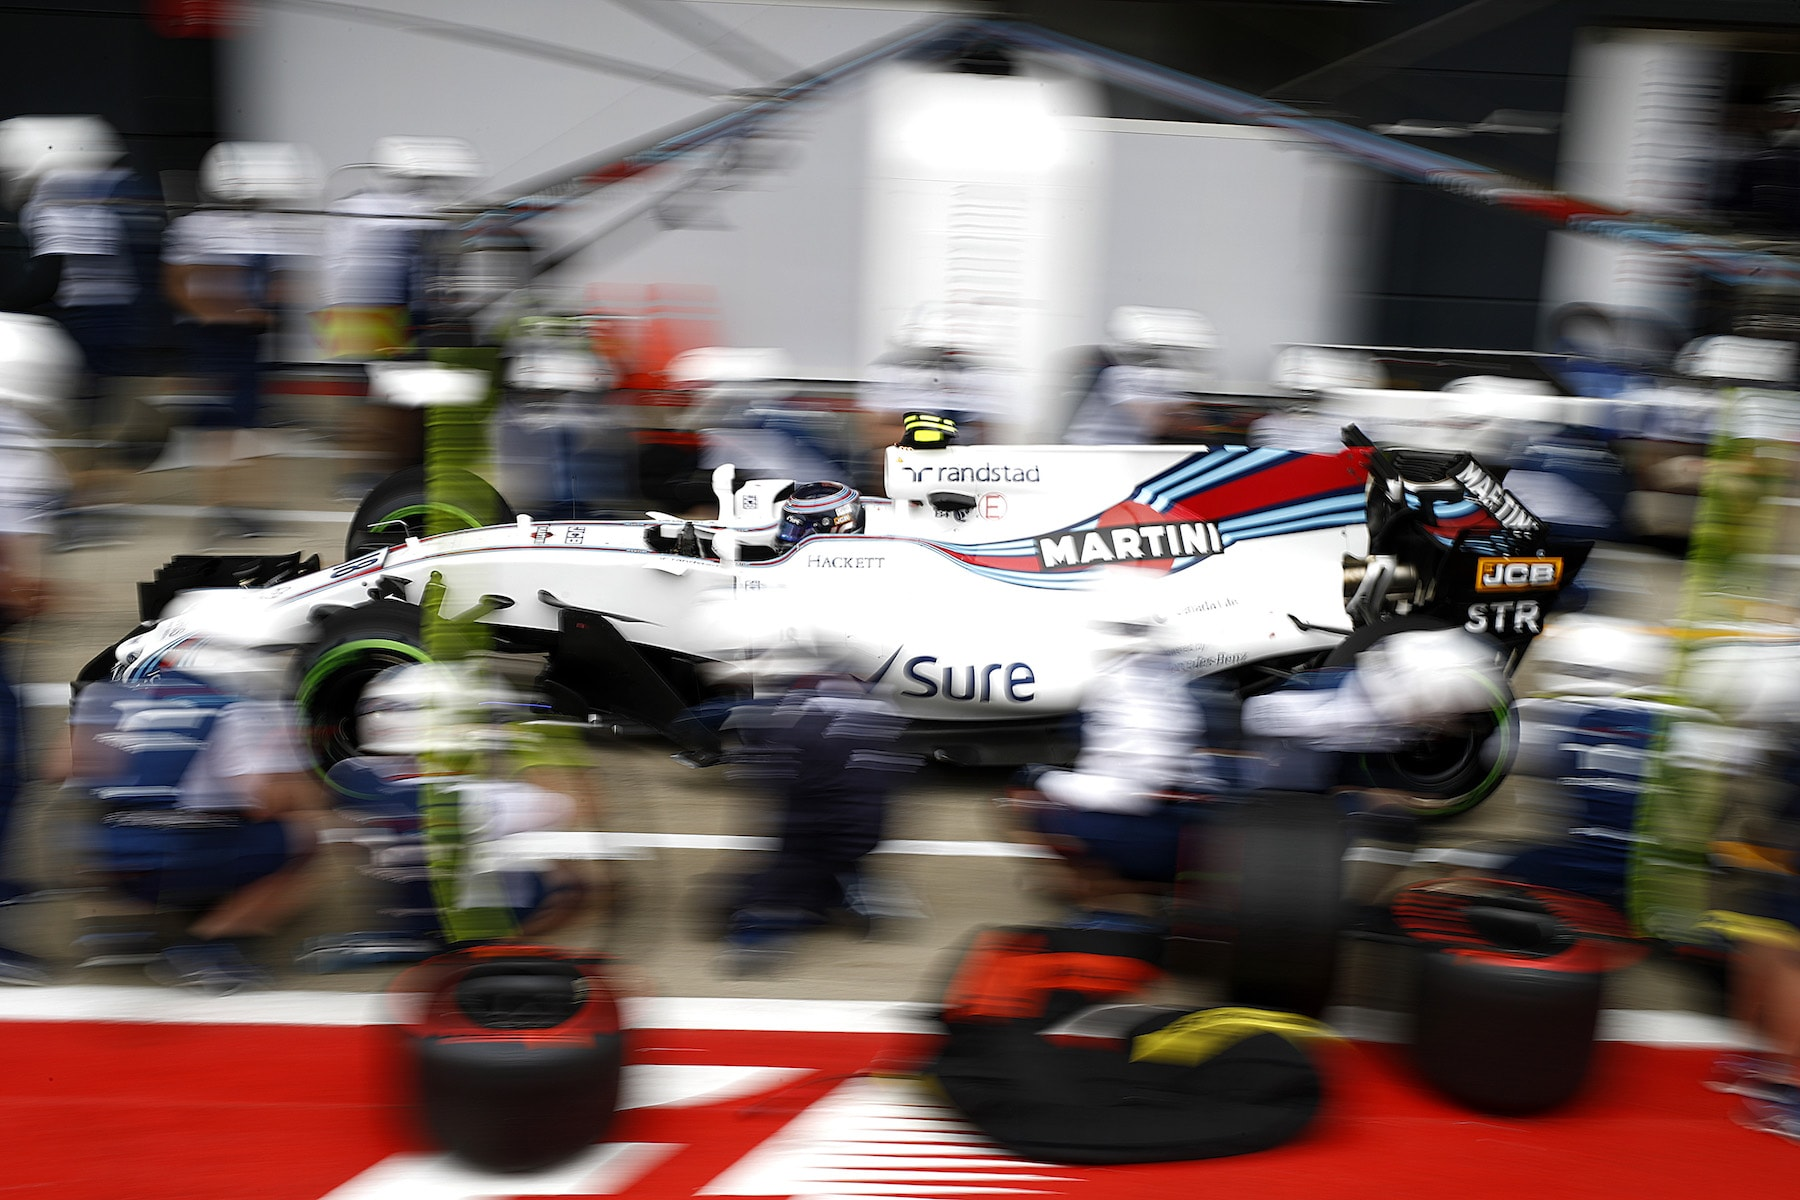 2017 Lance Stroll | Williams FW40 | 2017 British GP Q1 1 photo by Glenn Dunbar copy.jpg